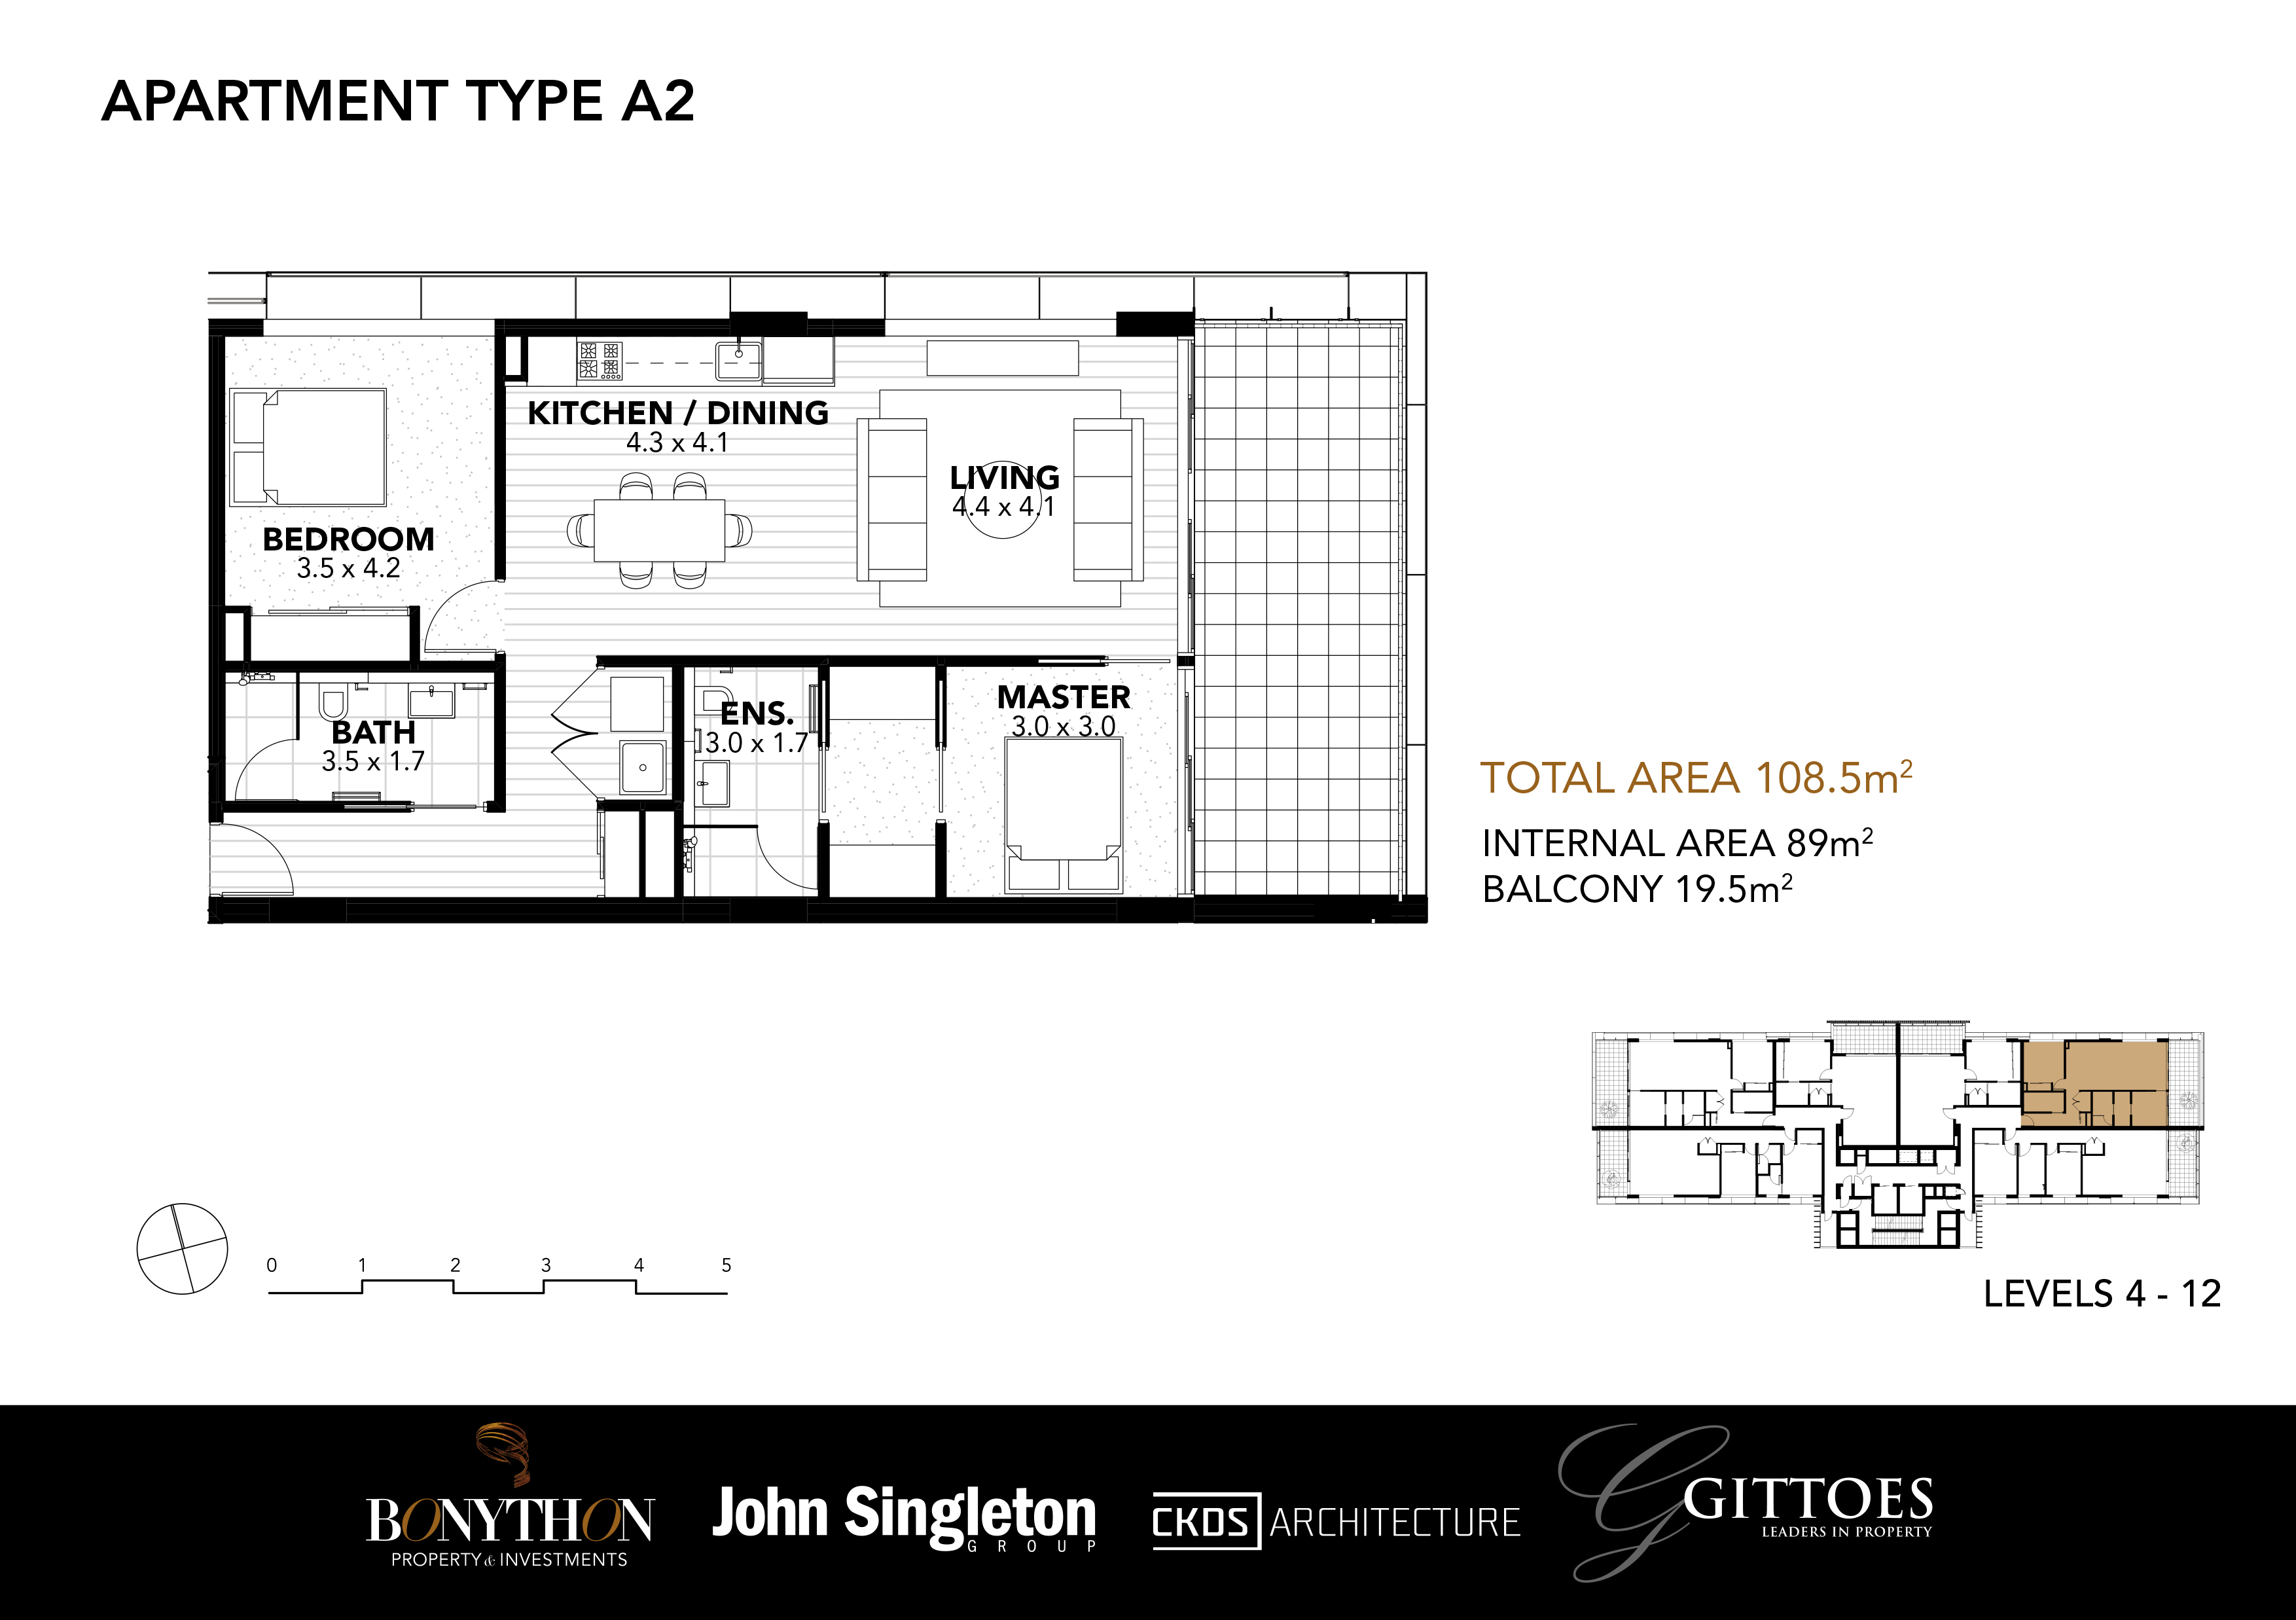 Apartment Style A2